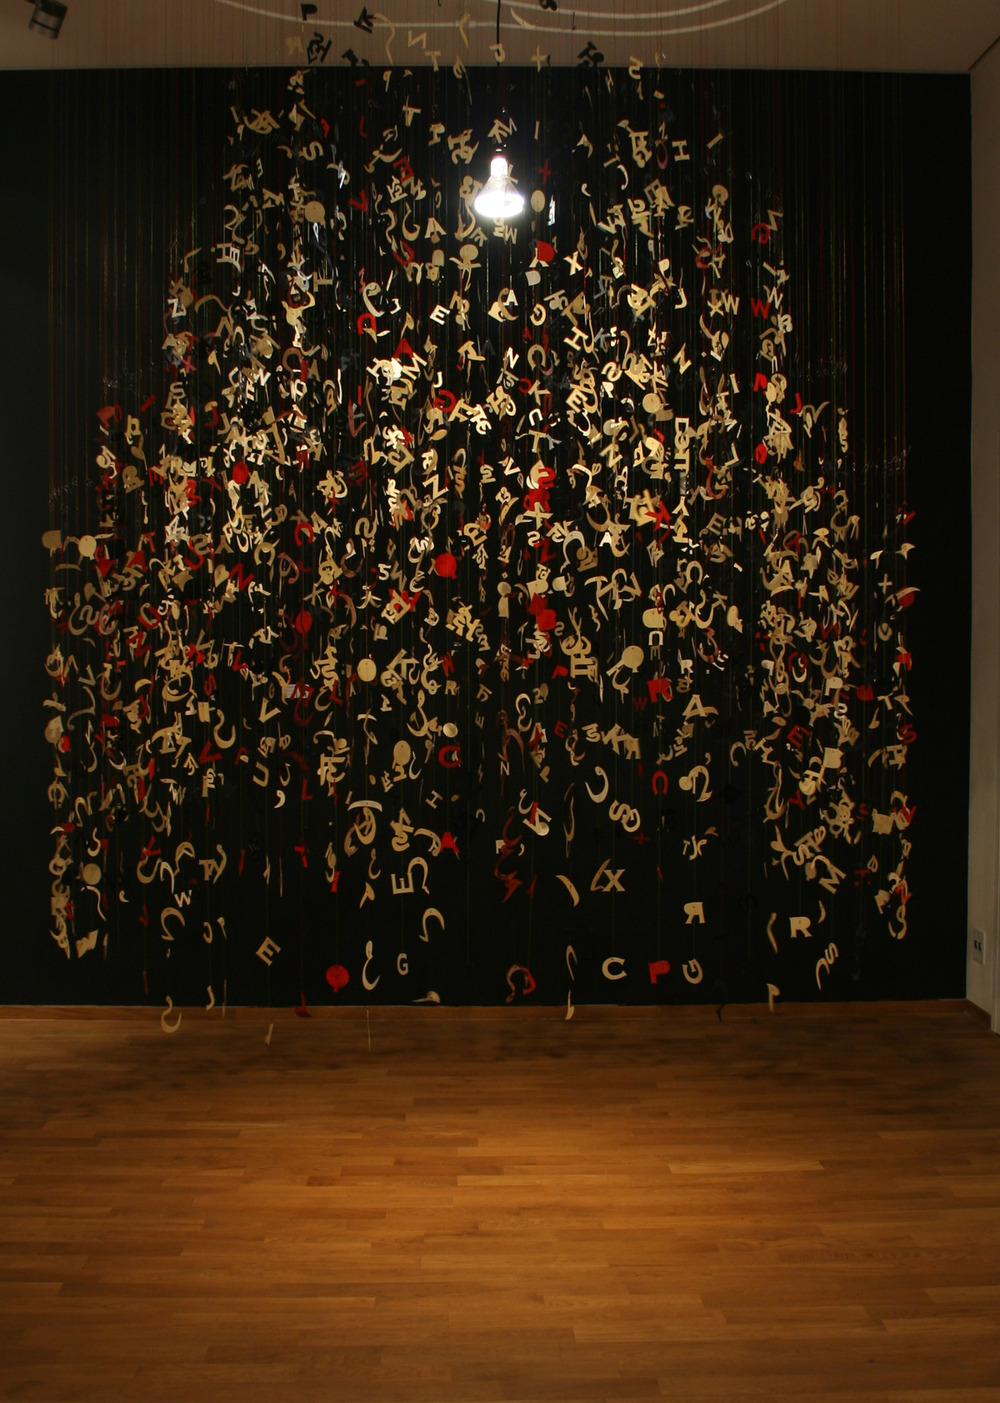 My Forked Tongue II   Bohemian National Hall: Manhatten, NY   Mixed Media (Paper, Metallic Thread, Beads, Wax and Dyes)   7' Radius x 12' Height   2010